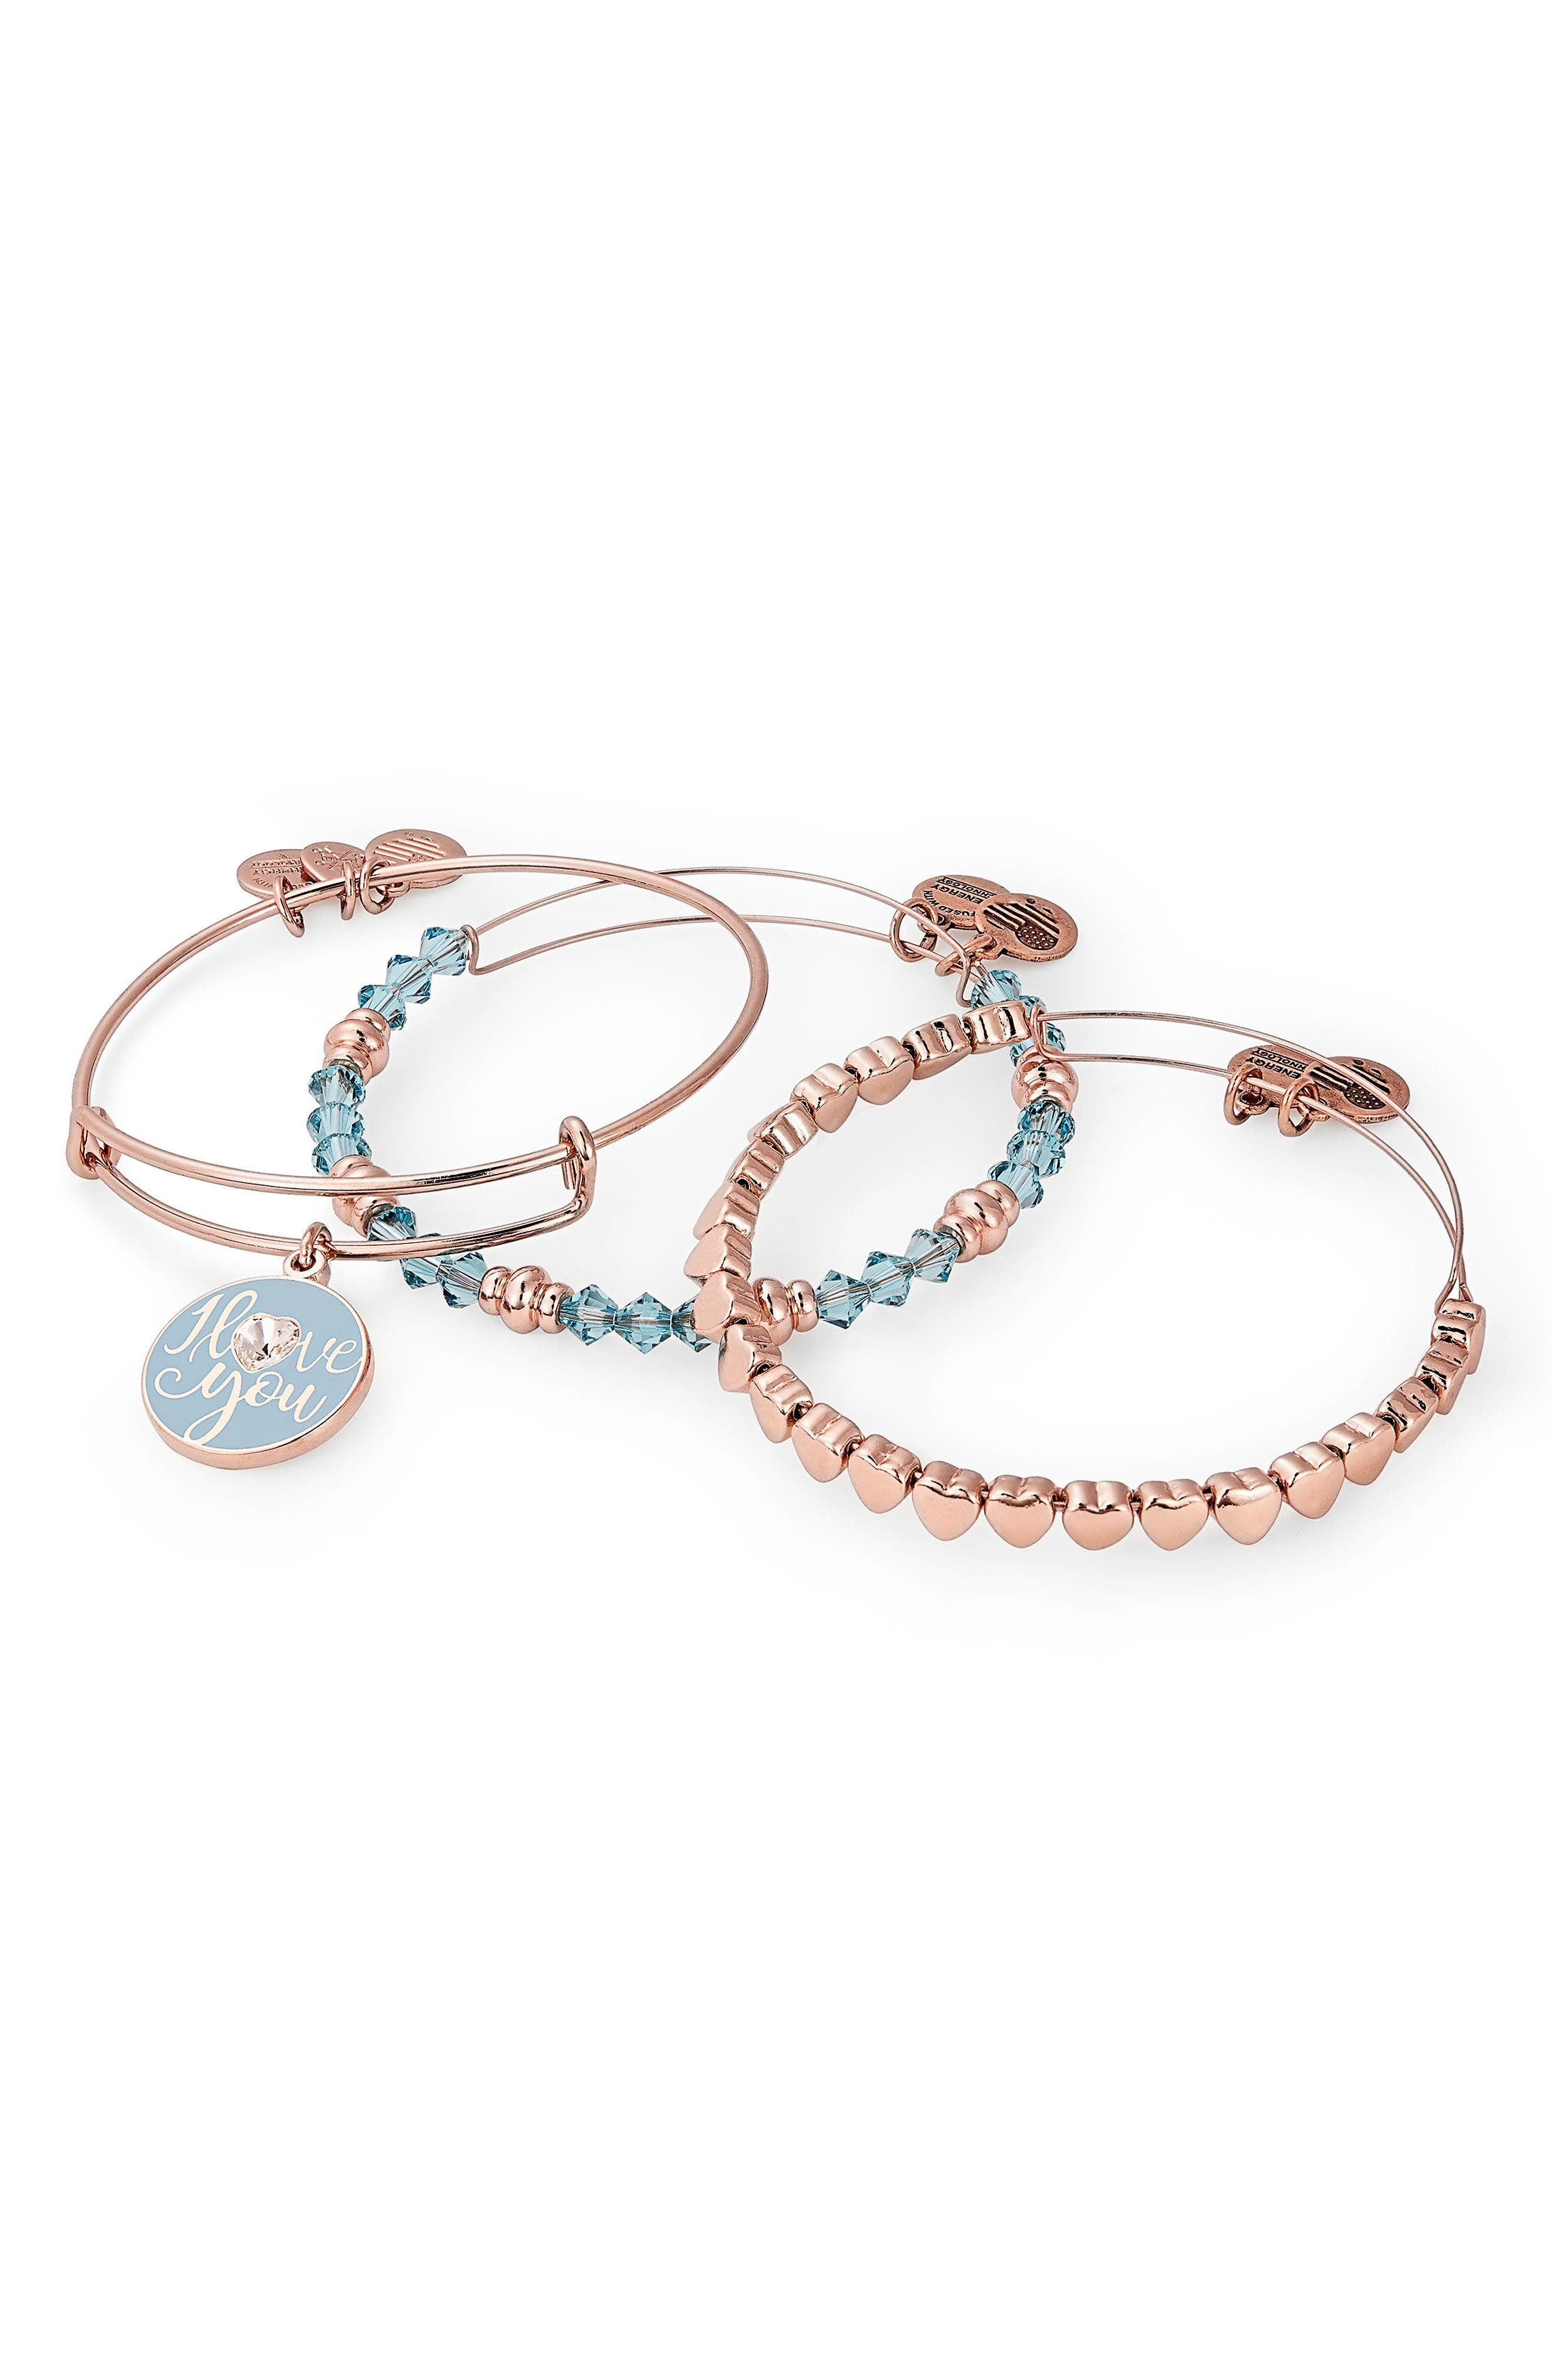 Main Image - Alex and Ani I Love You Set of 3 Adjustable Wire Bangles